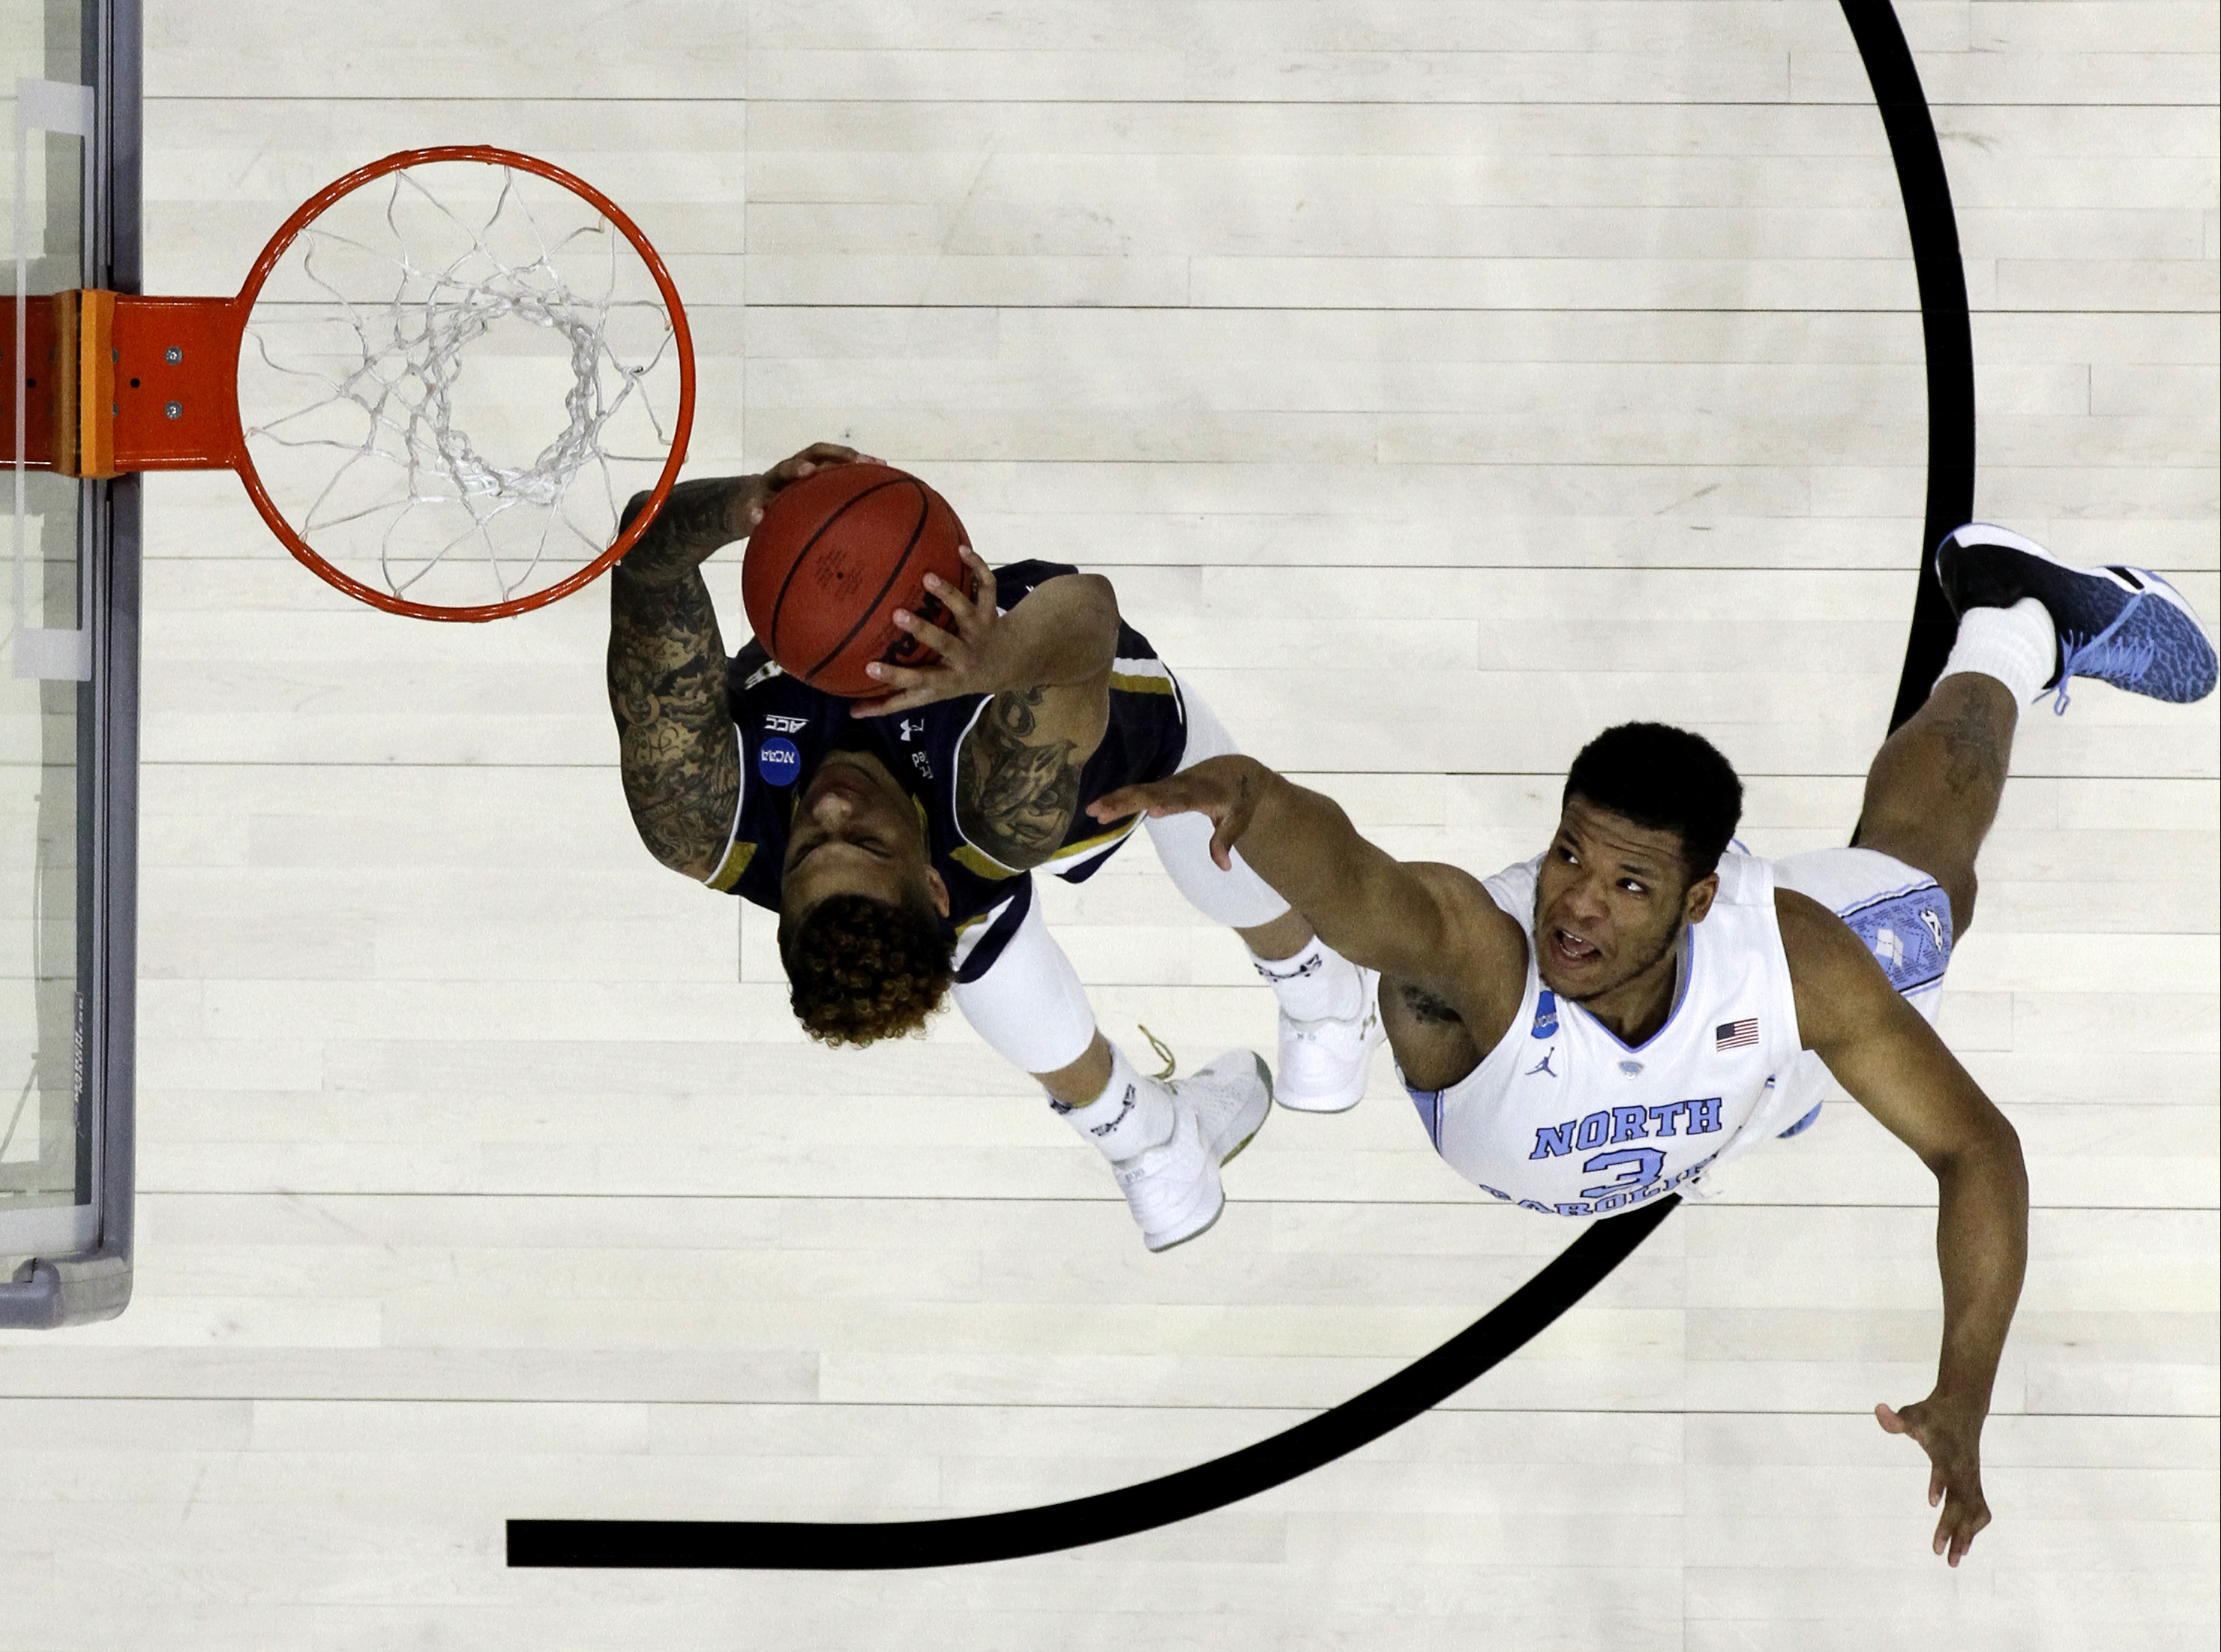 Notre Dame's Zach Auguste, left, goes up for a shot past North Carolina's Kennedy Meeks during the first half of a regional final men's college basketball game in the NCAA Tournament, Sunday, March 27, 2016, in Philadelphia. (AP Photo/Chris Szagola)